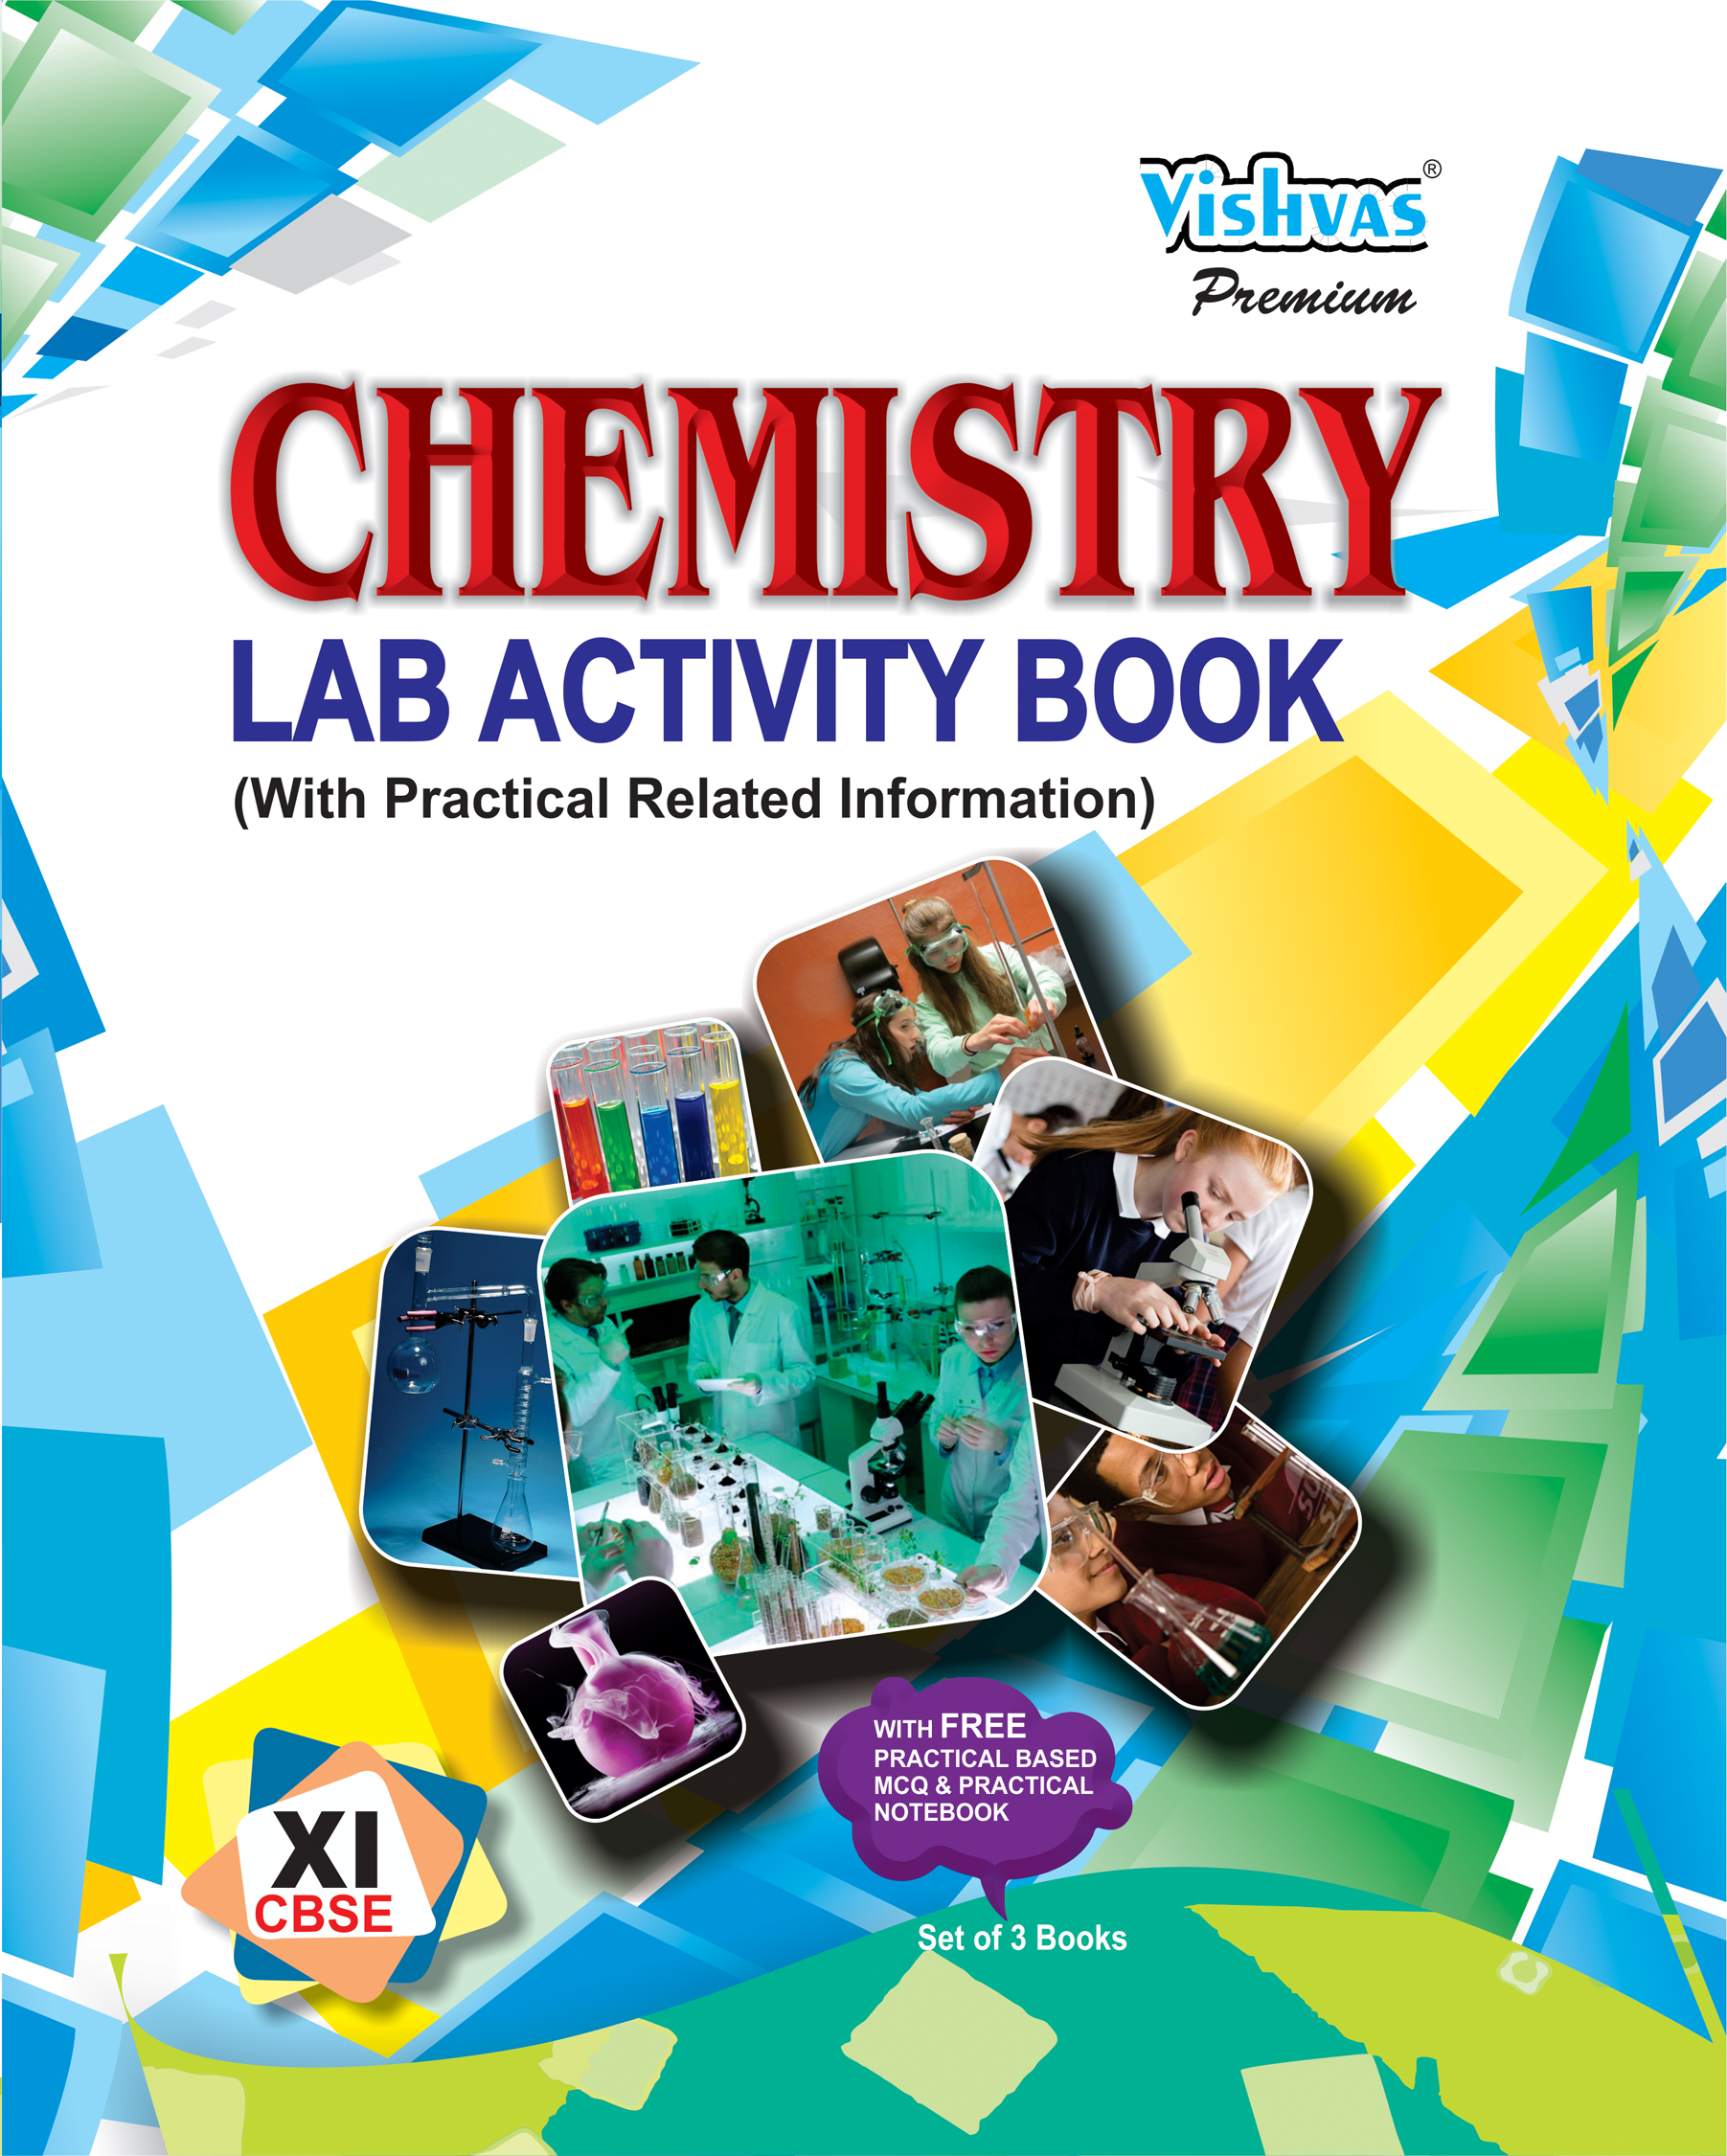 Cbse Chemistry Lab Activity Book Class Xi With Practical Related Information With Free